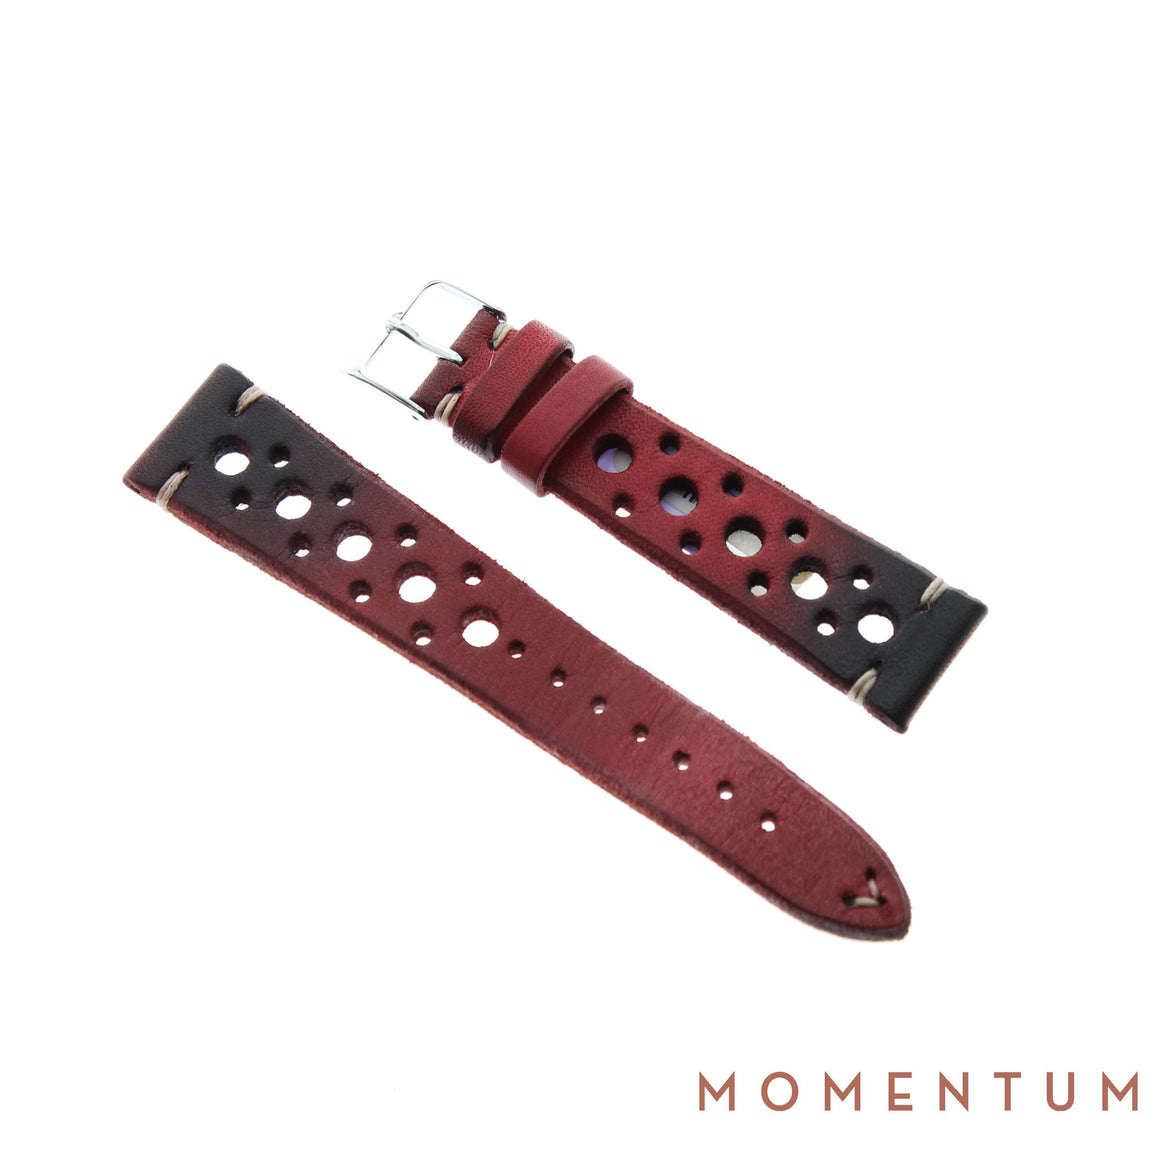 Vintage Strap - Red Berluti with holes - Calf Leather - Momentum Dubai